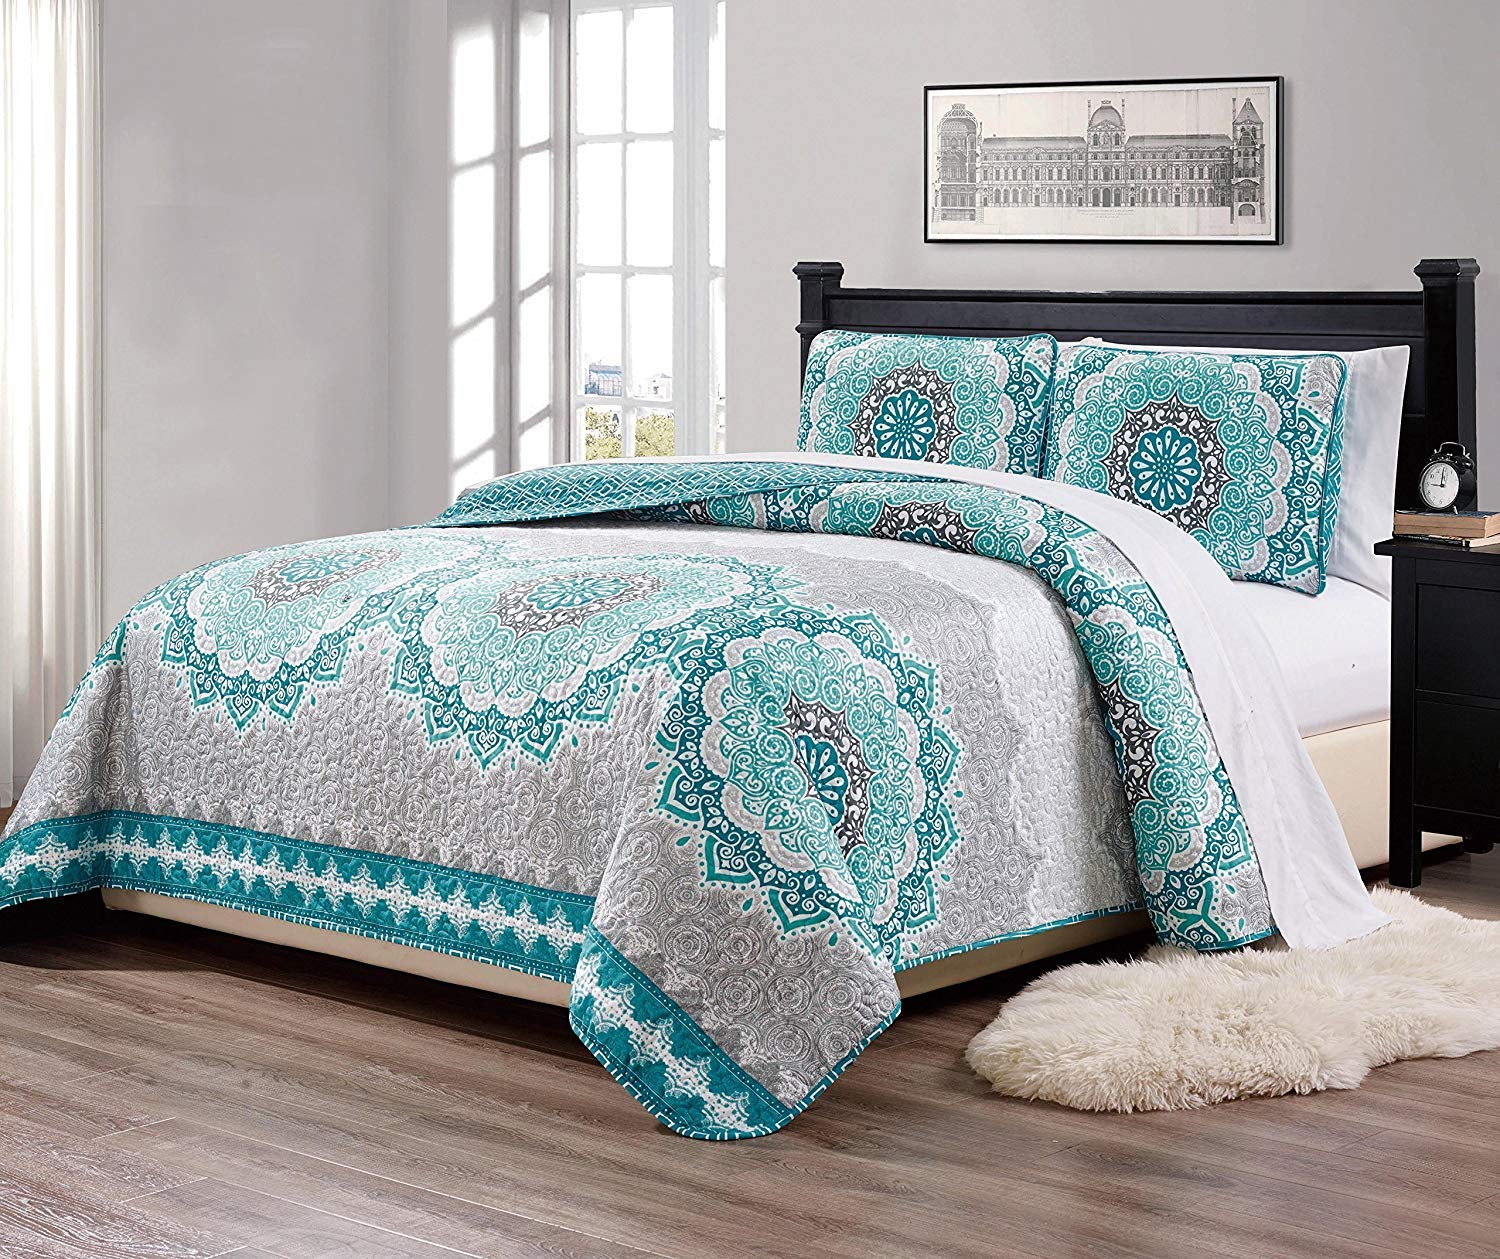 Linen Plus King 7pc Over Size Quilted Bedspread Floral Turquoise Teal Aqua Coastal Plain/Gray Green New